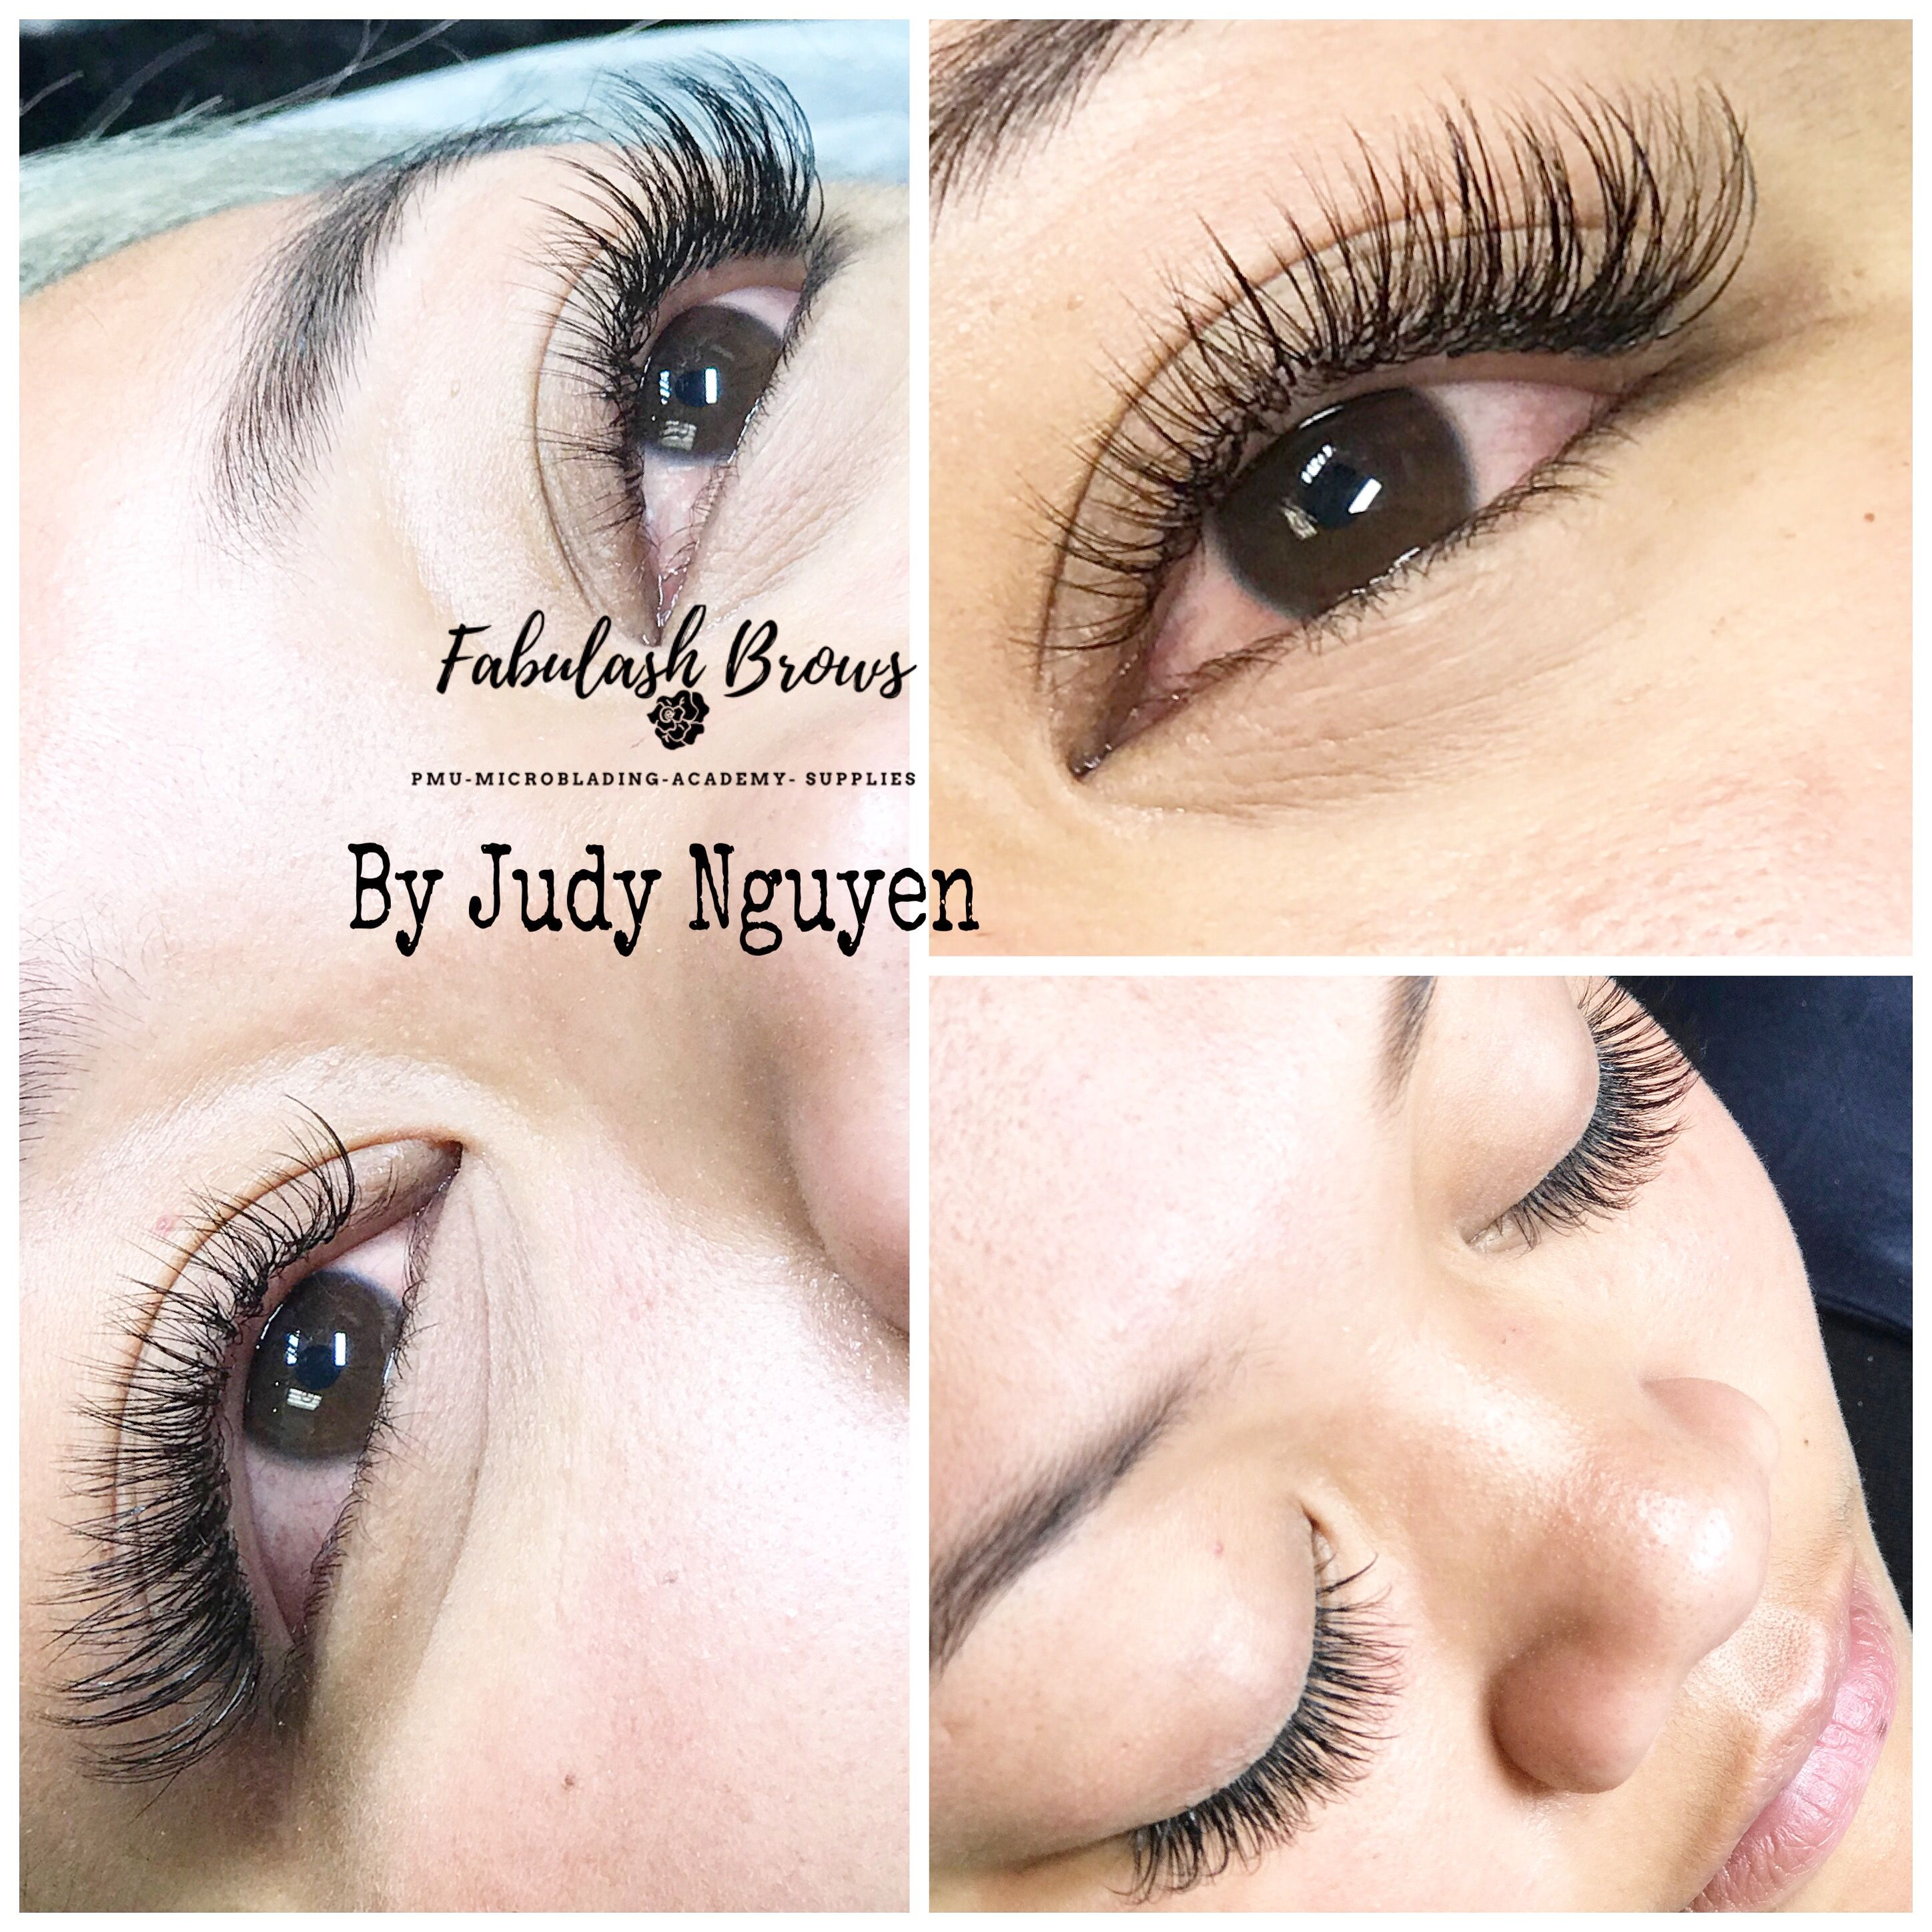 Pin by Fabulash Brows on Fabulash extension Extensions